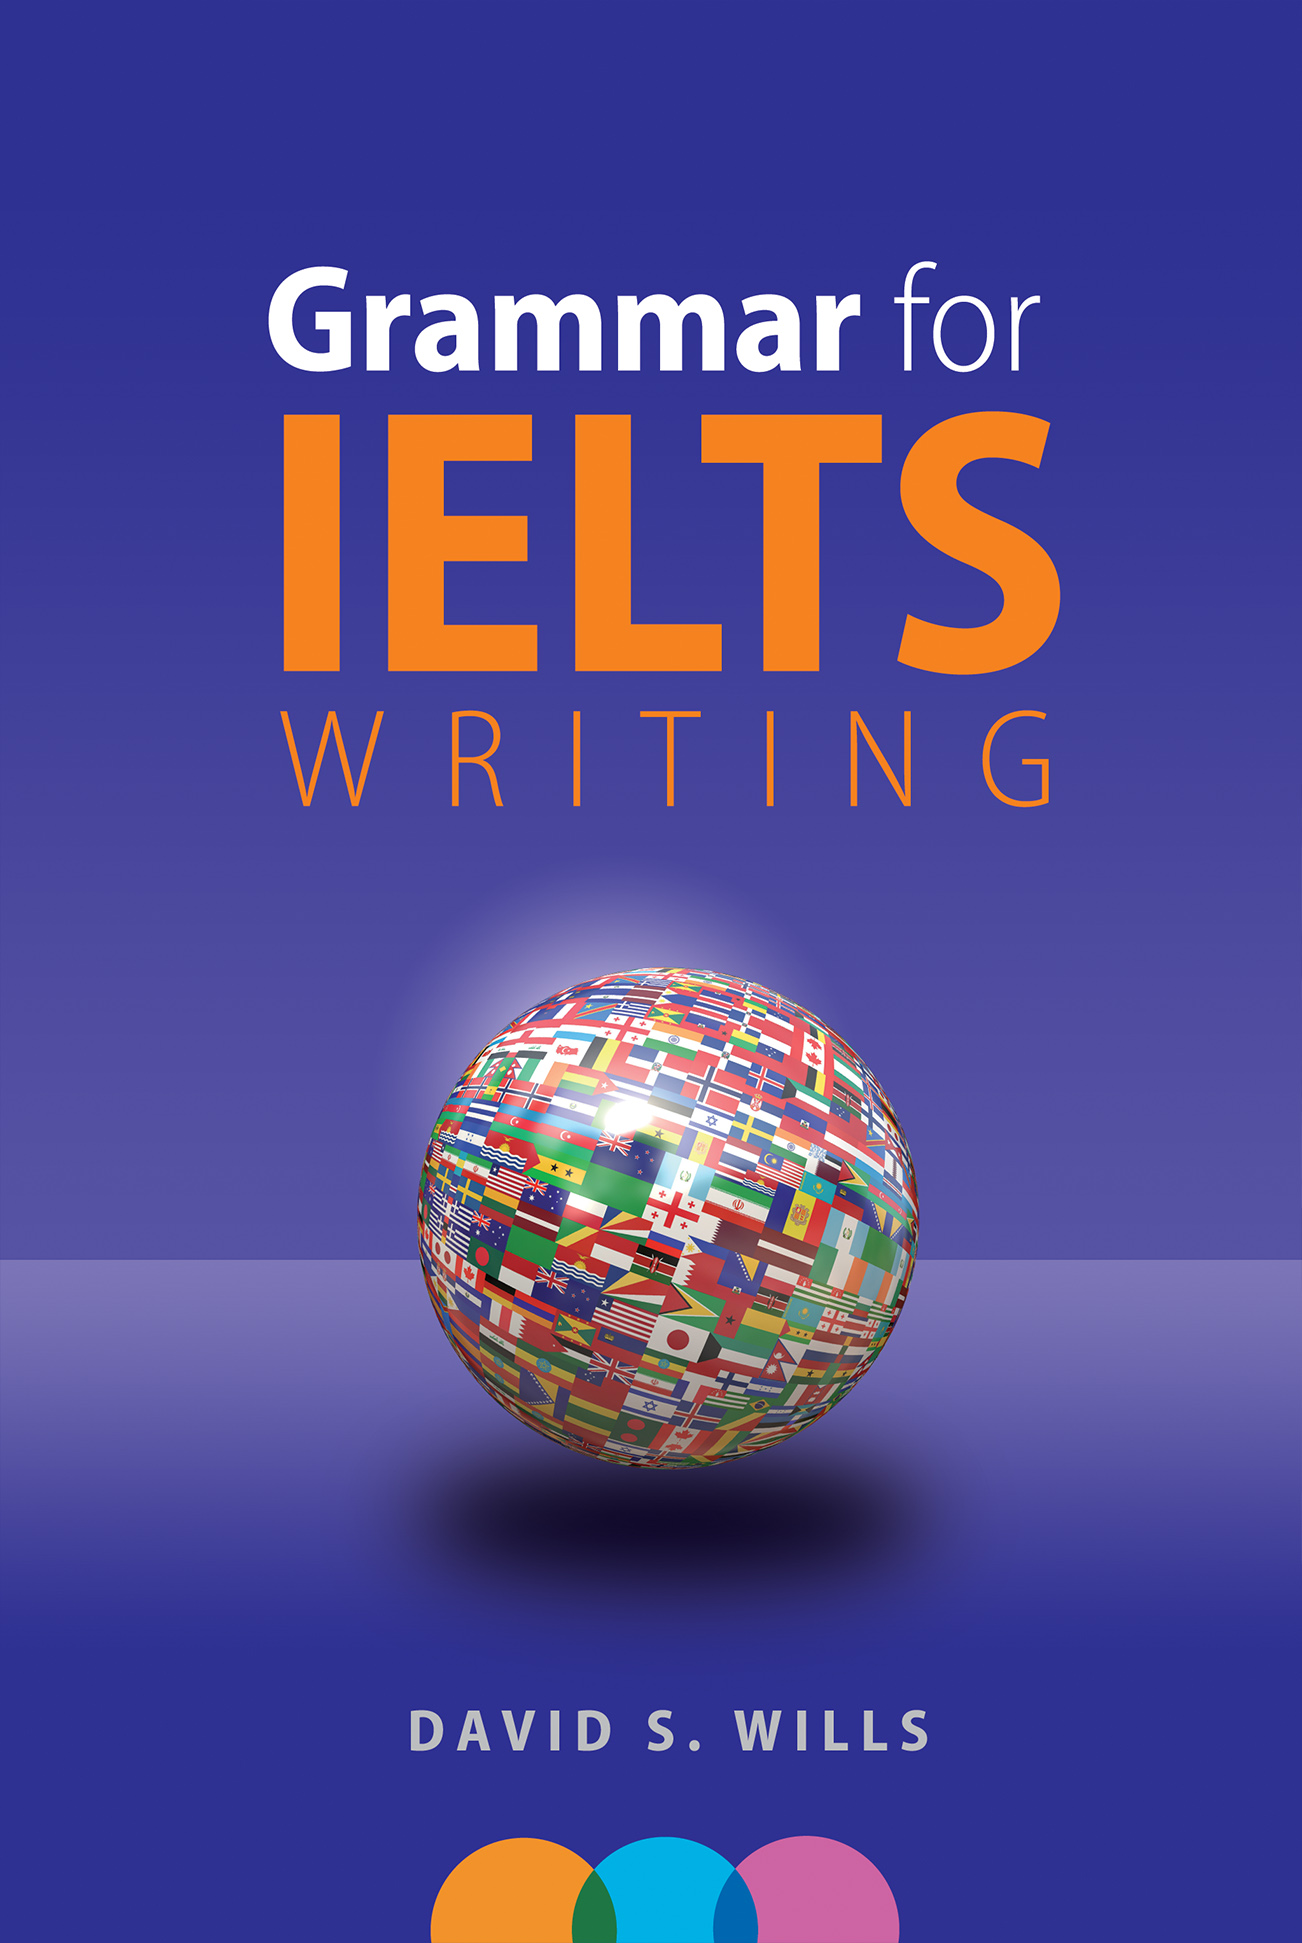 new cover Small - IELTS Speaking Partners